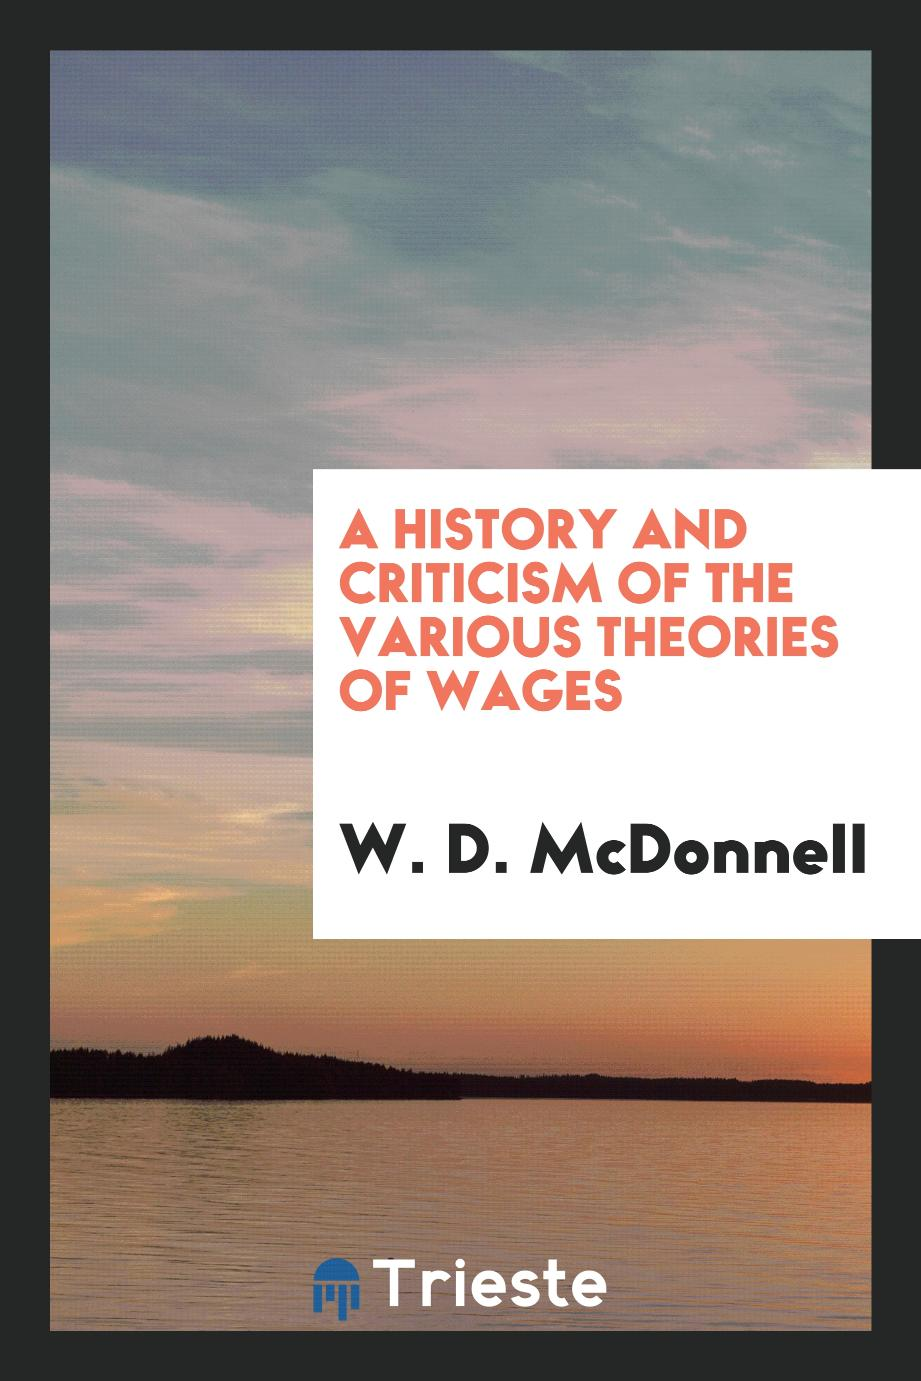 A History and Criticism of the Various Theories of Wages